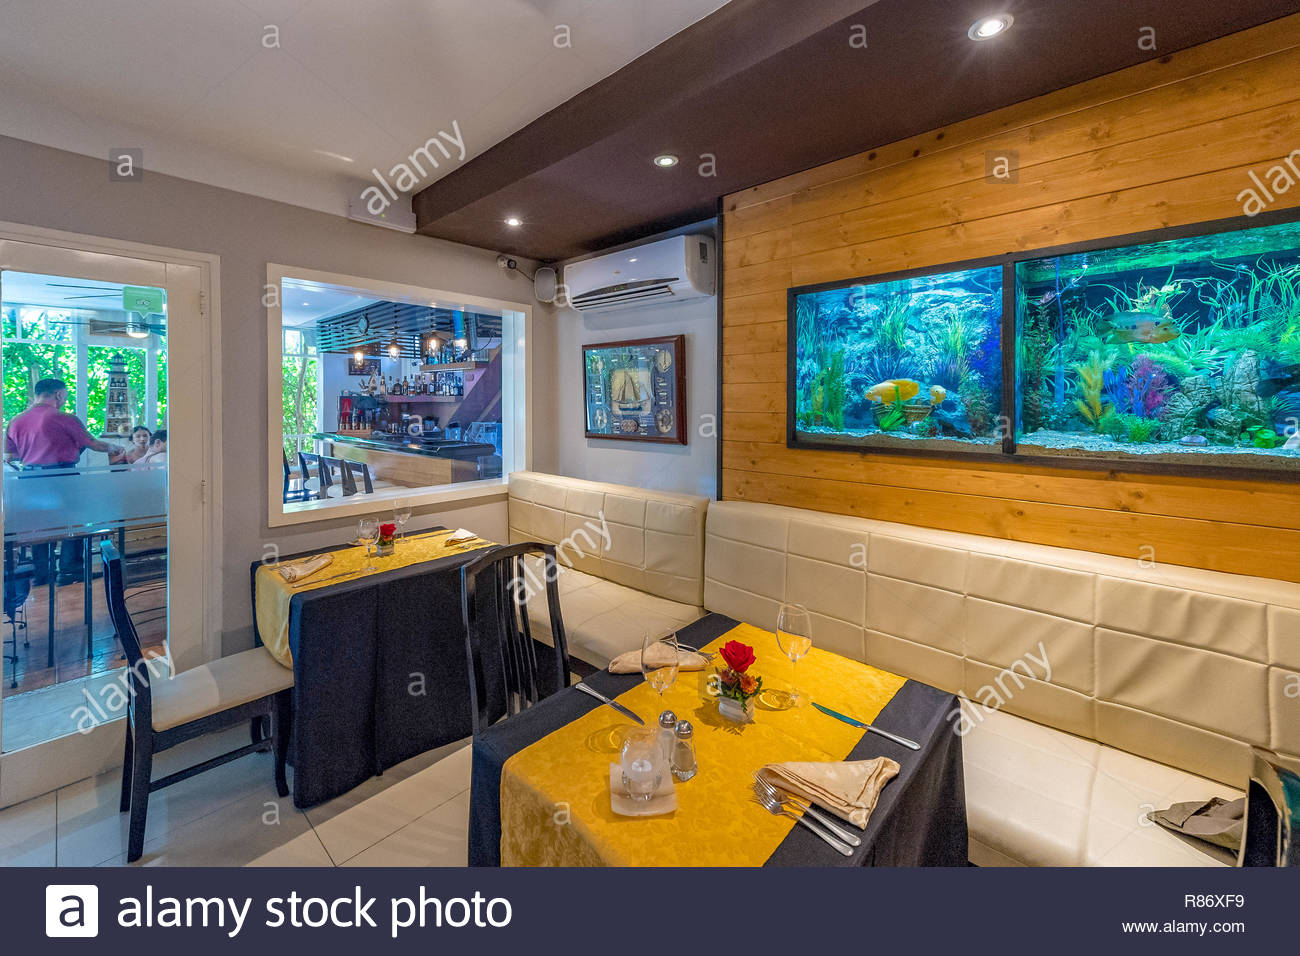 Luxurious Sitting Tables And Decoration Design In Salsa Suarez Restaurant Or Paladar Interior View Of The Famous Private Small Business Stock Photo Alamy